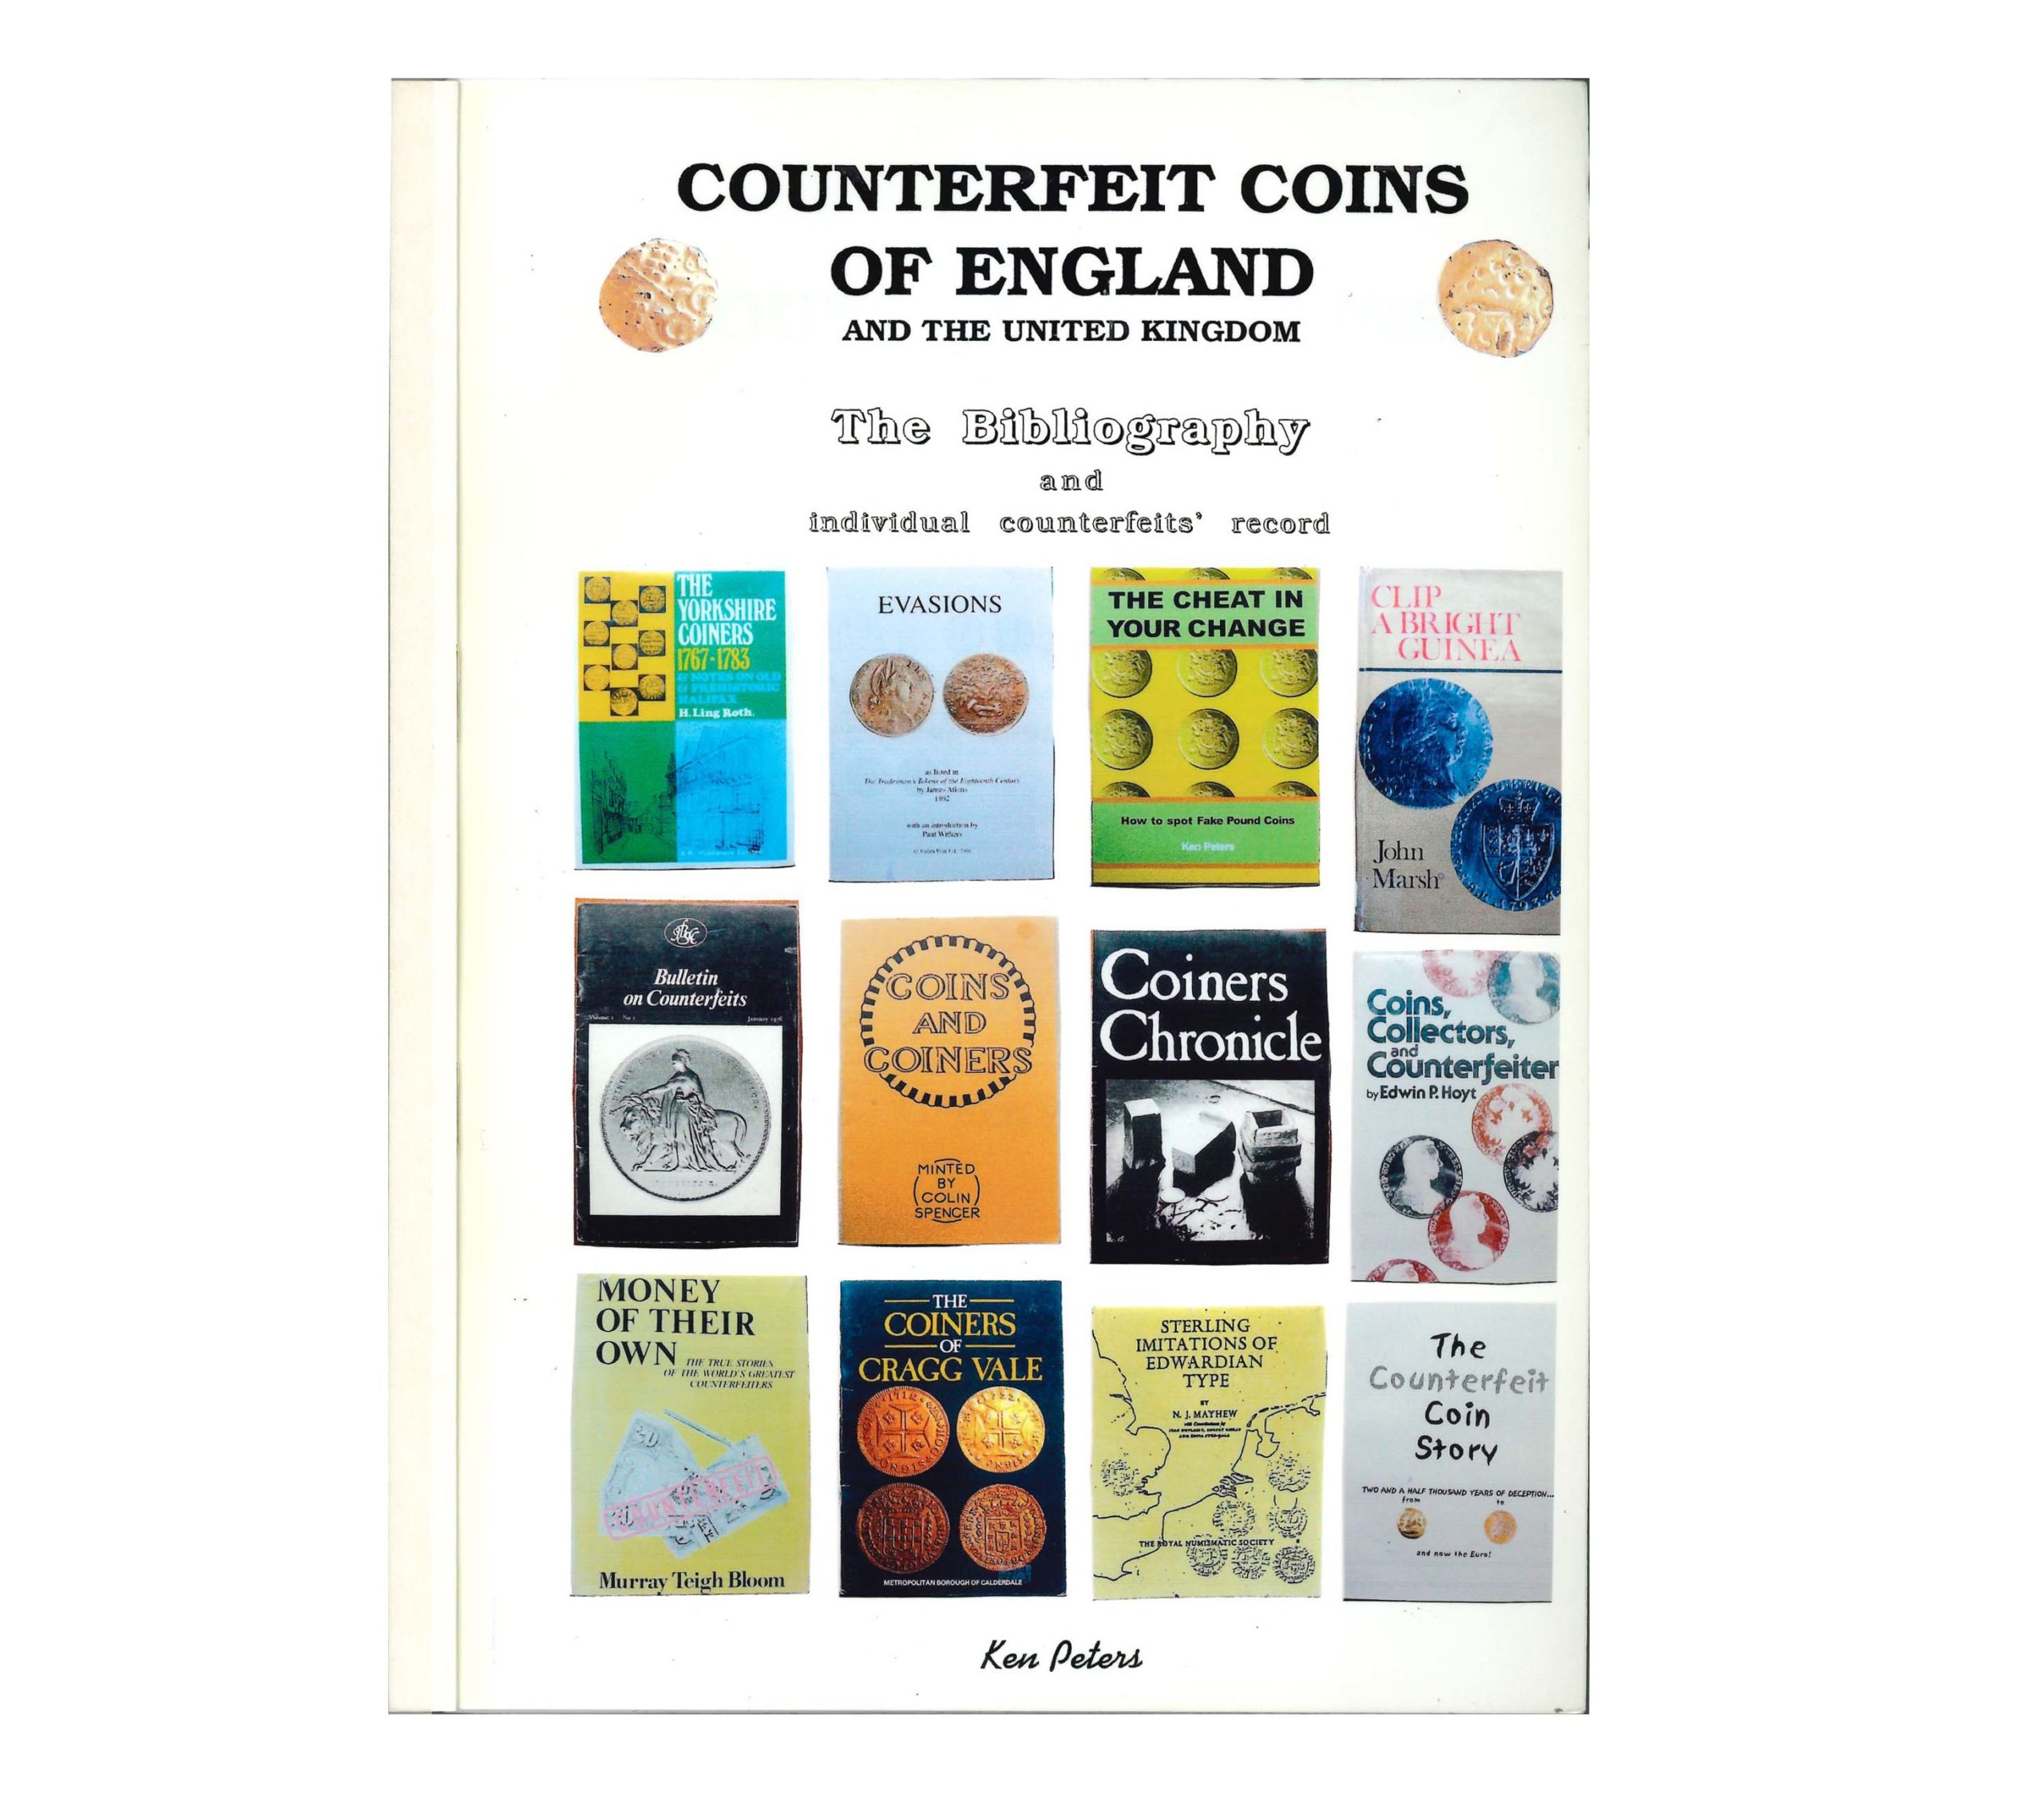 Counterfeit Coins of England and the United Kingdom